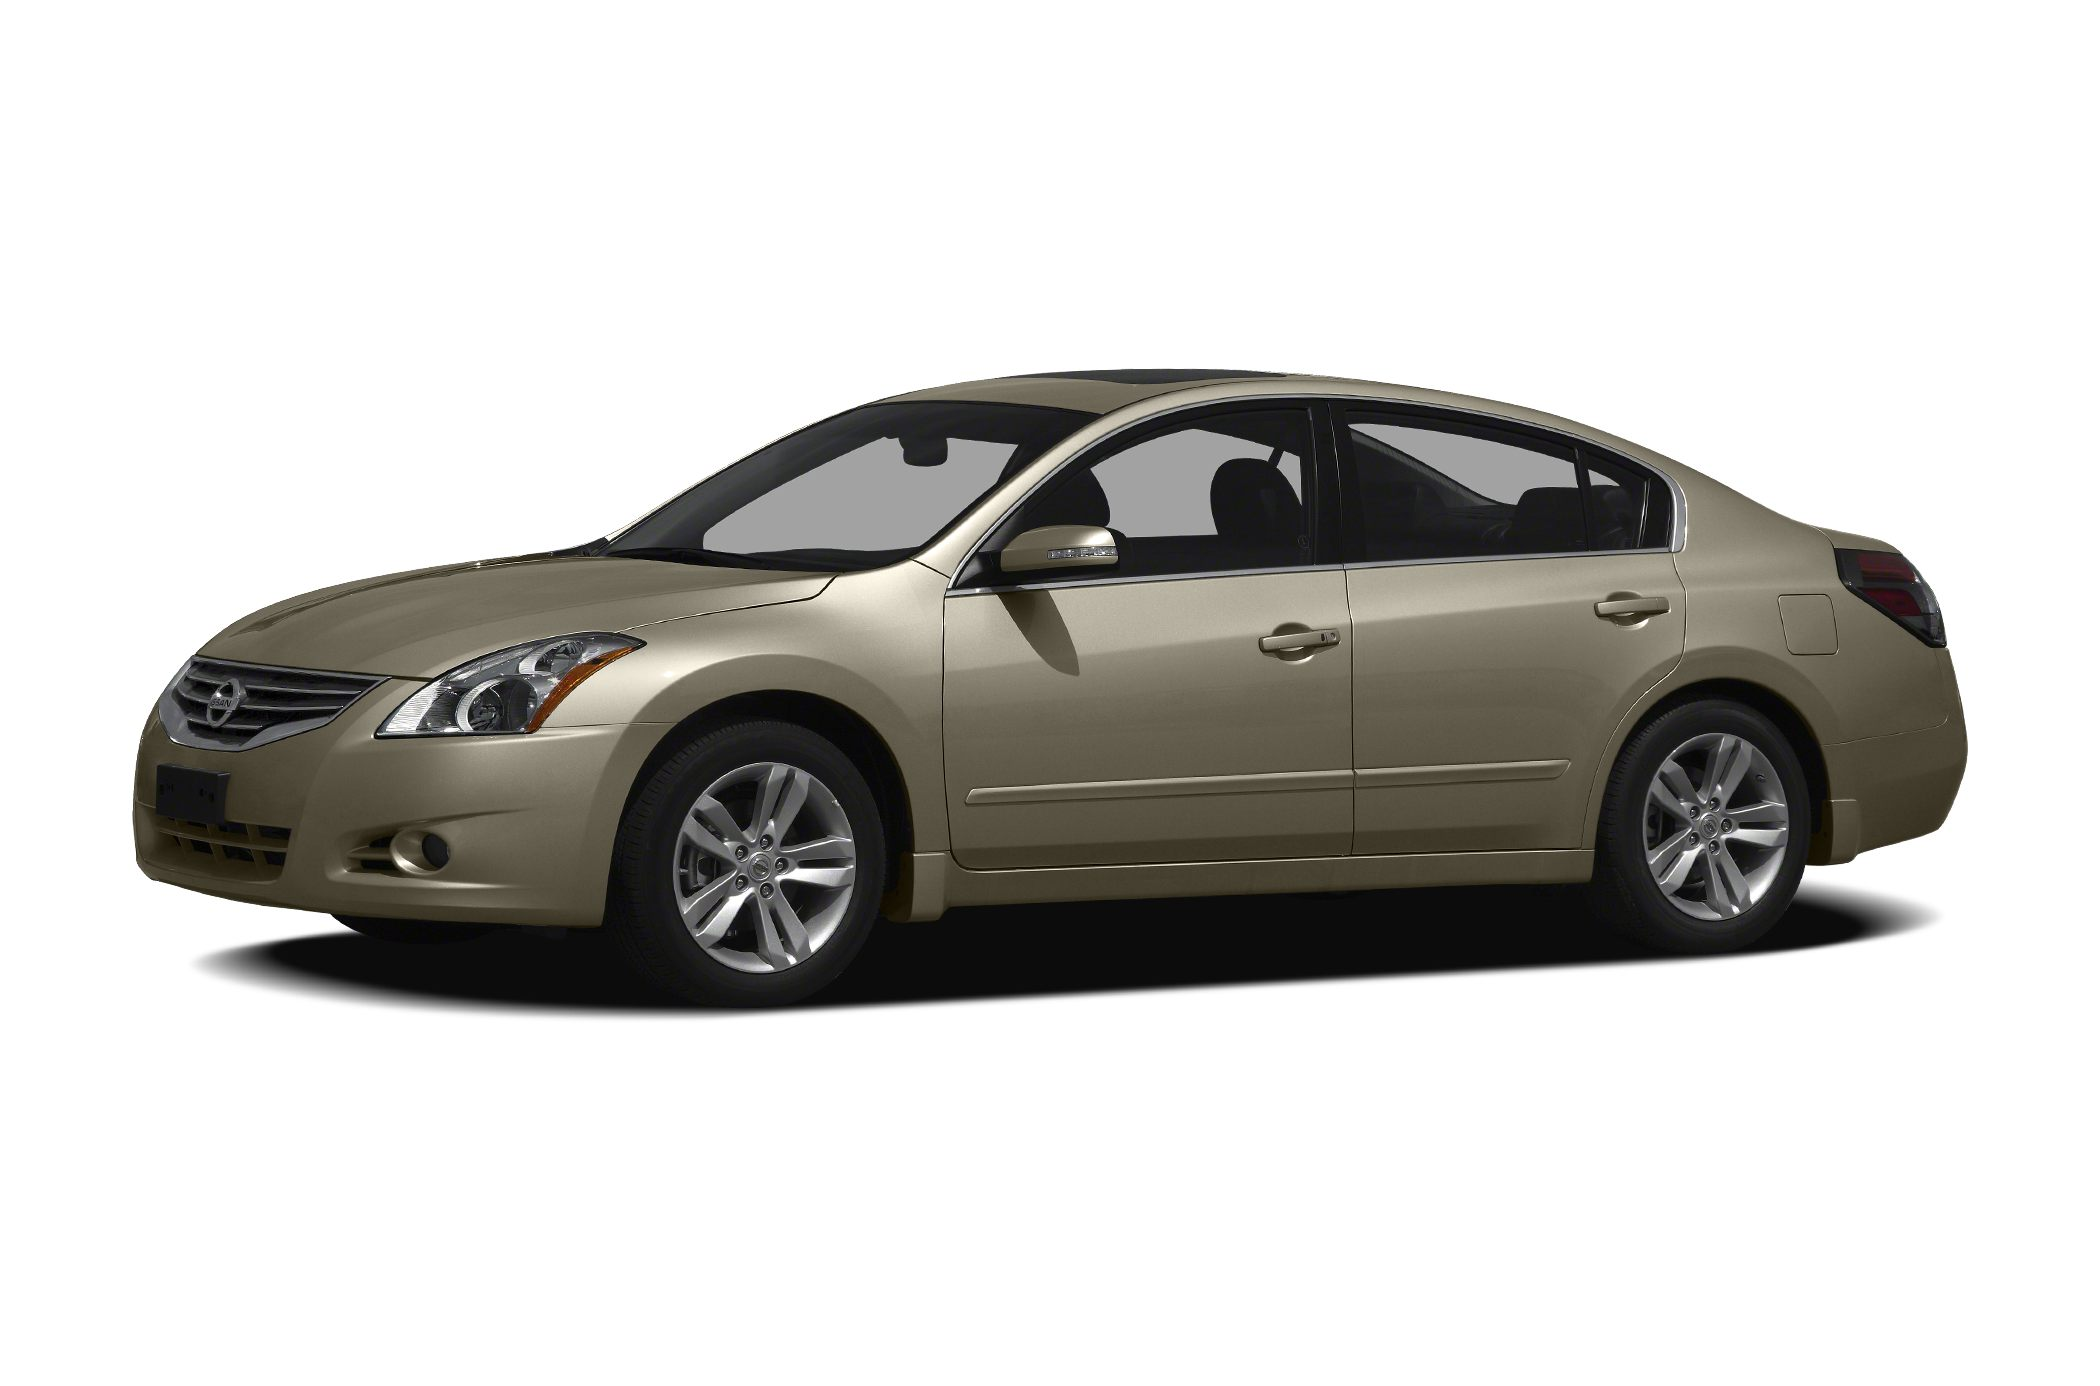 2011 Nissan Altima Specs And Prices